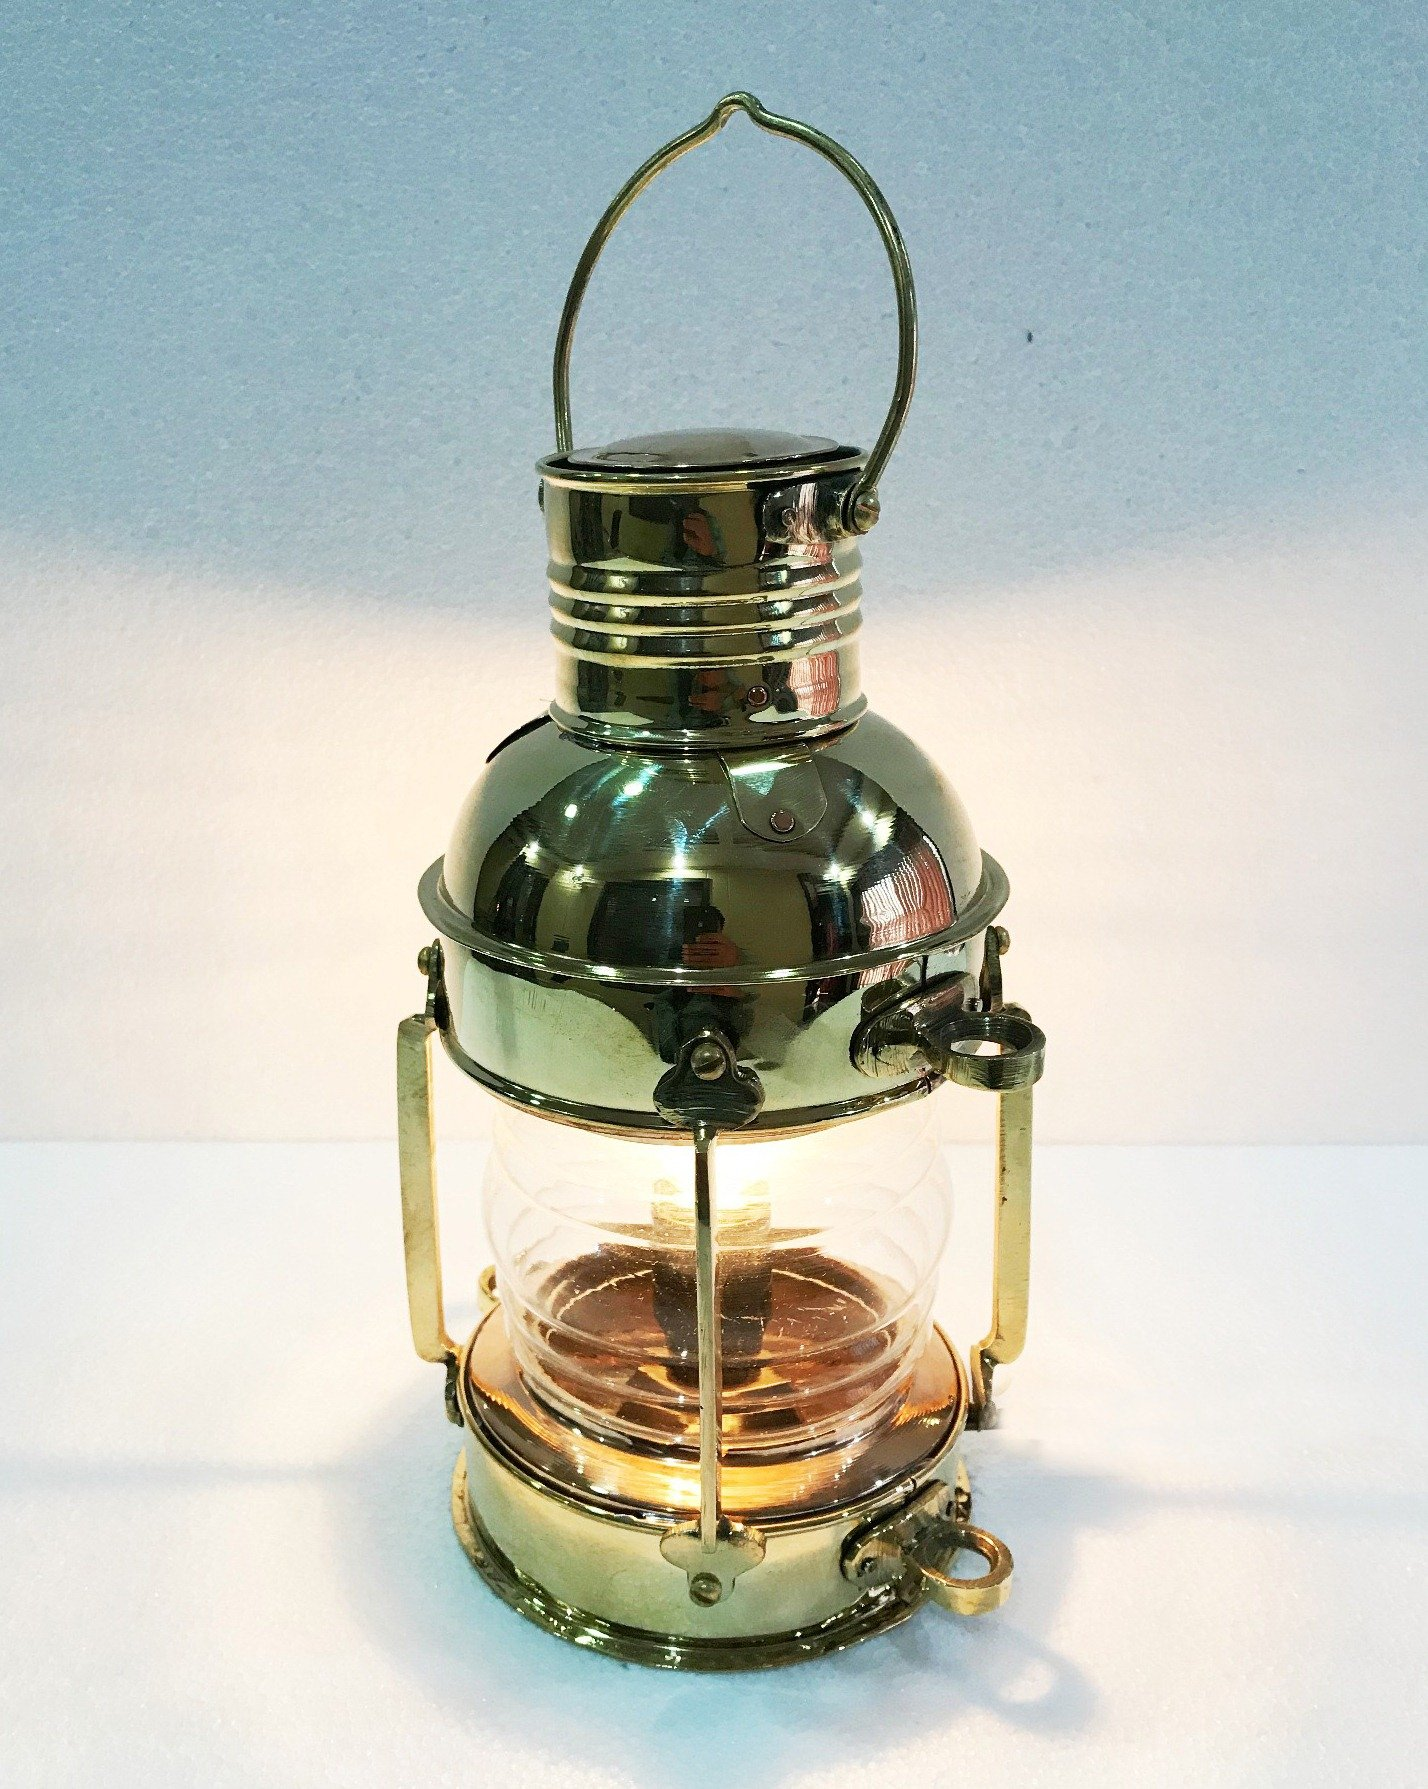 Marine Nautical Store Electric Vintage Stable Gold Brass Lantern Lamp Wall Hanging Home Decor